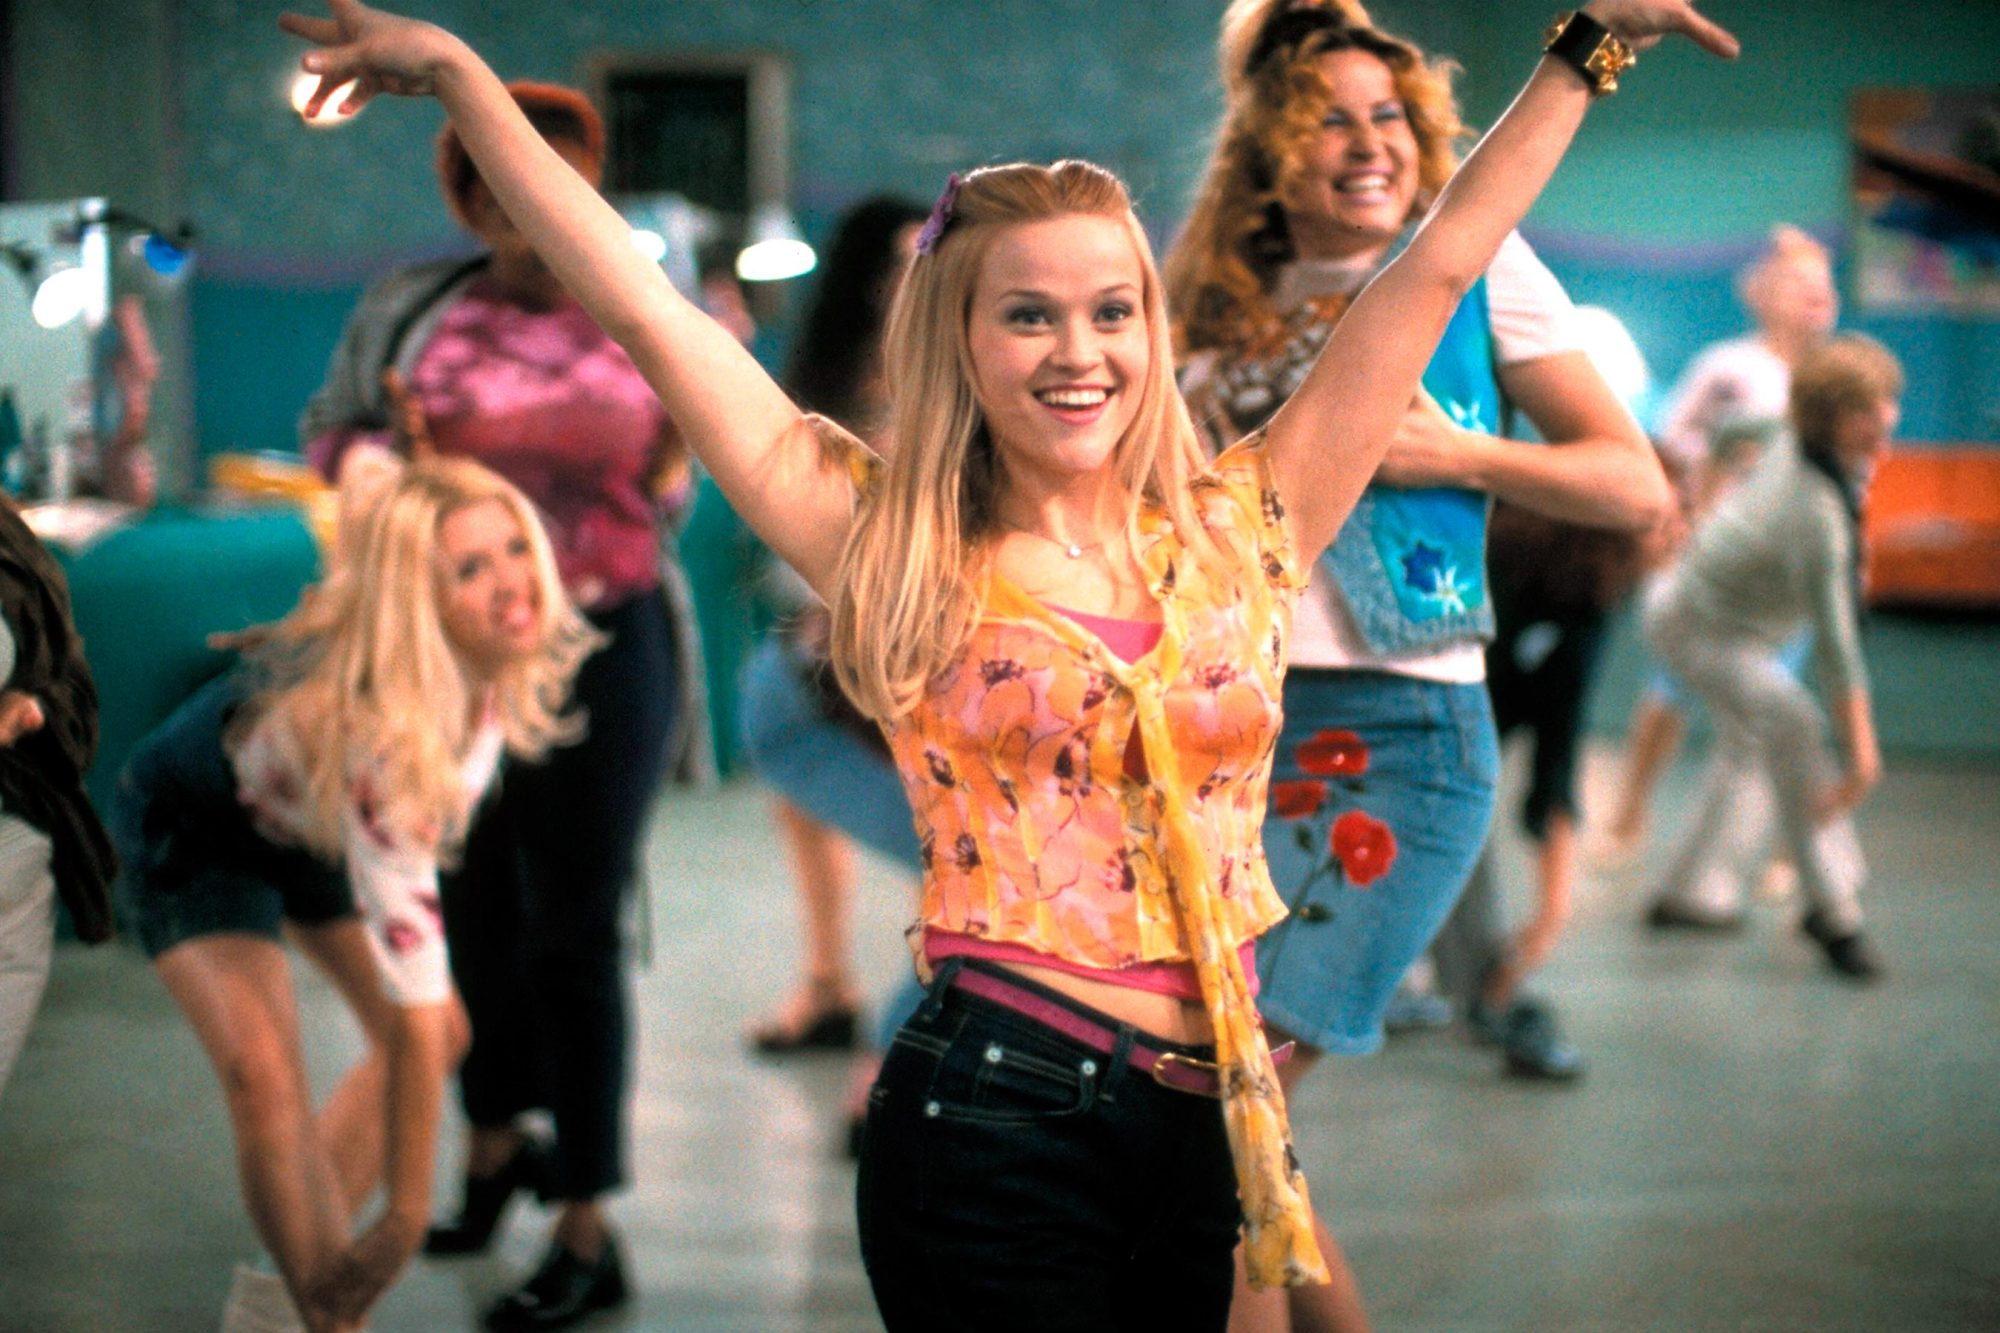 Legally Blonde (2001)Directed by Robert LuketicShown: Reese Witherspoon